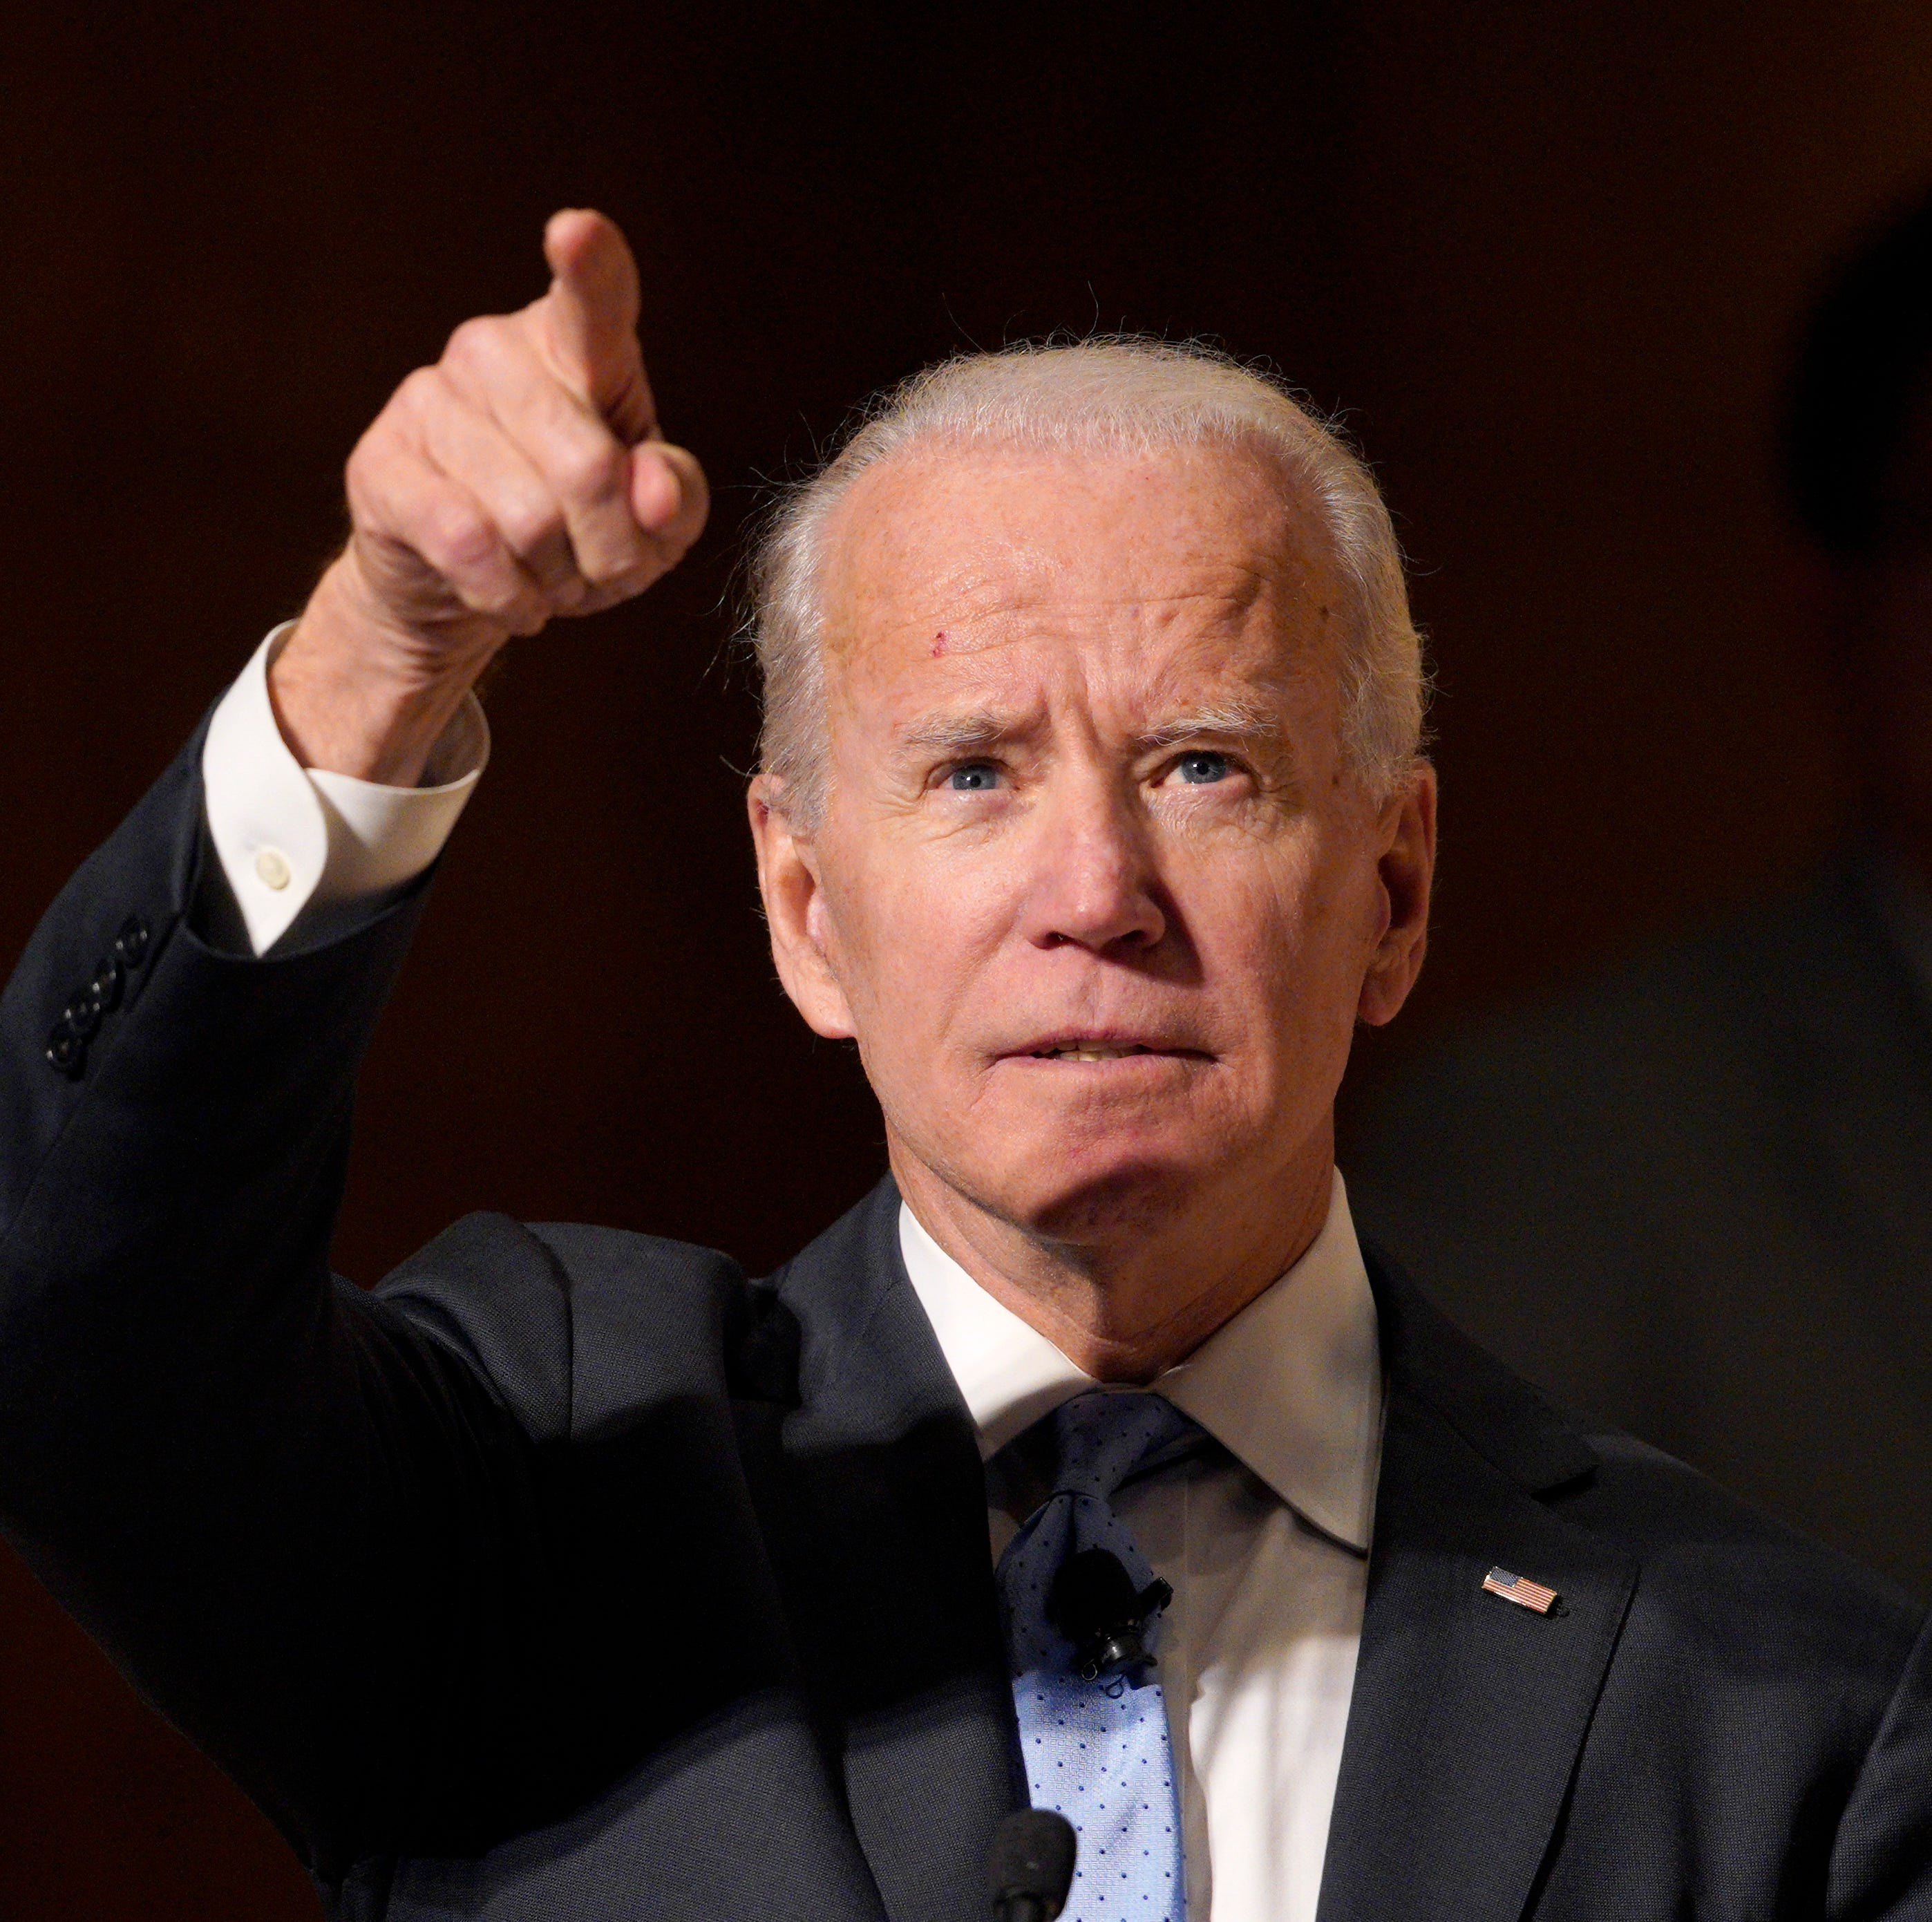 Biden told senior Democrat he is giving 2020 presidential race 'a shot,' according to The Hille